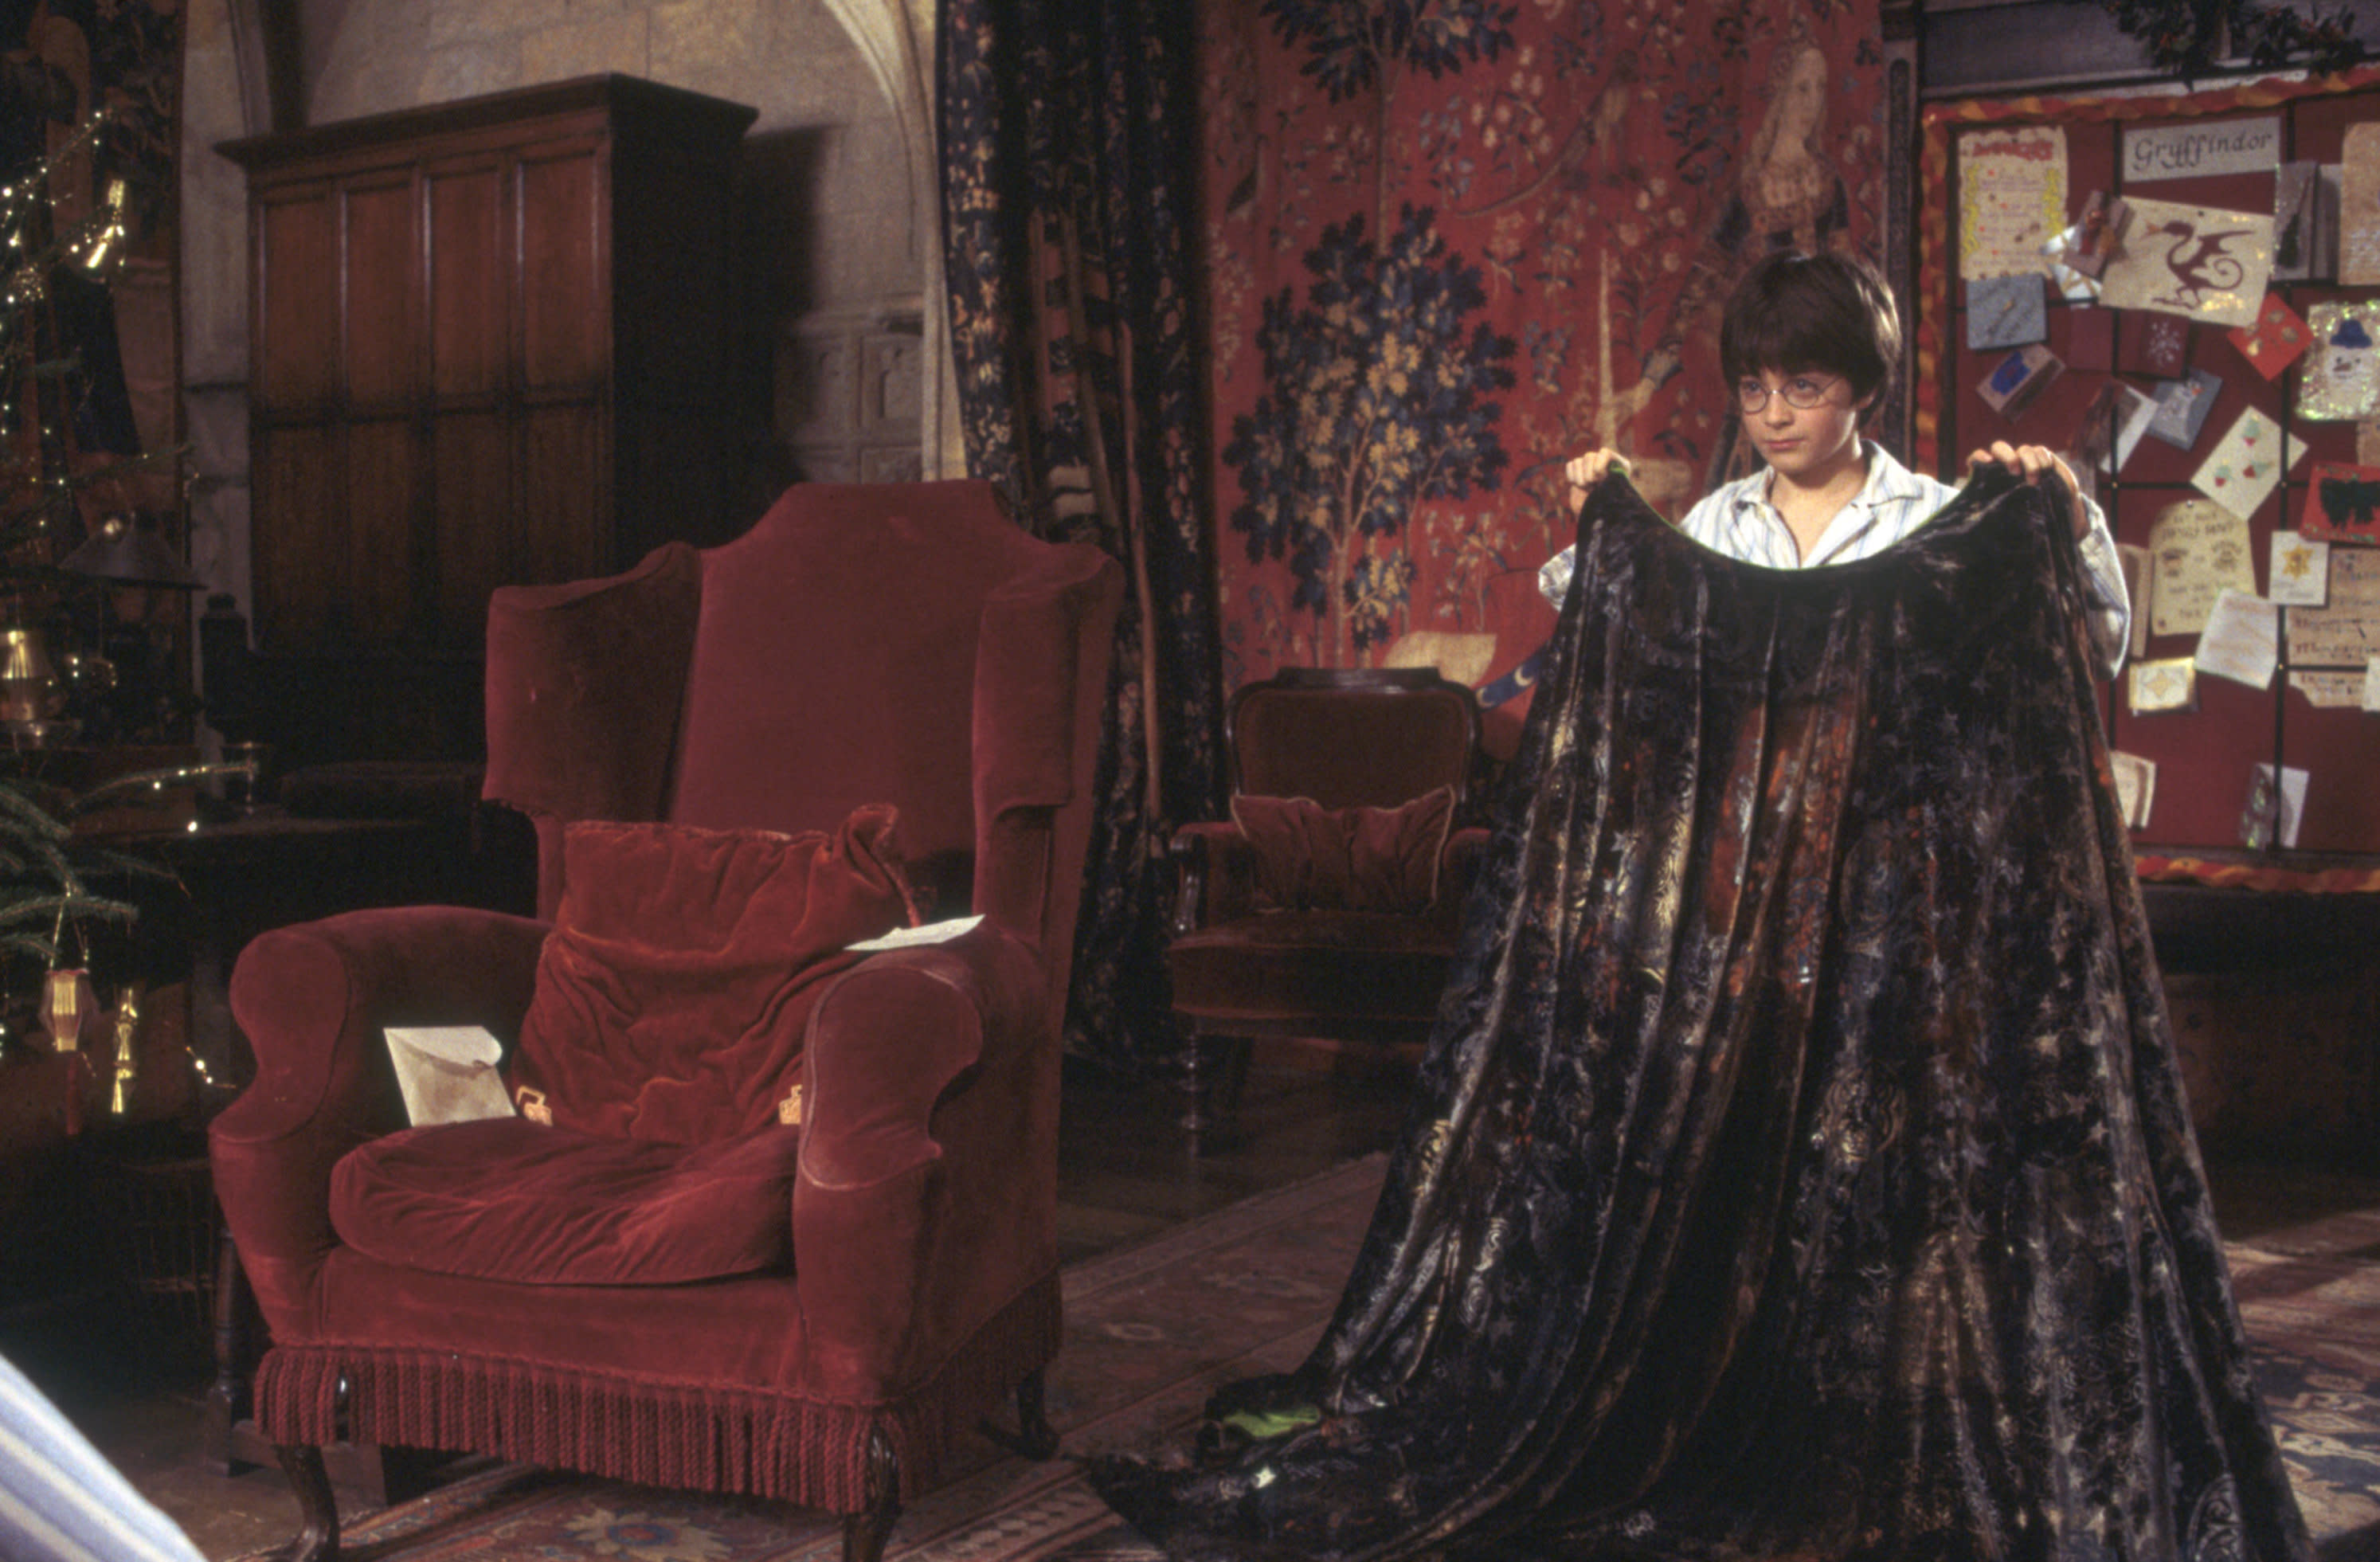 HarryPotter WB F1 HarryHoldingInvisibilityCloakInGryffindorCommonRoom Still 100615 Land